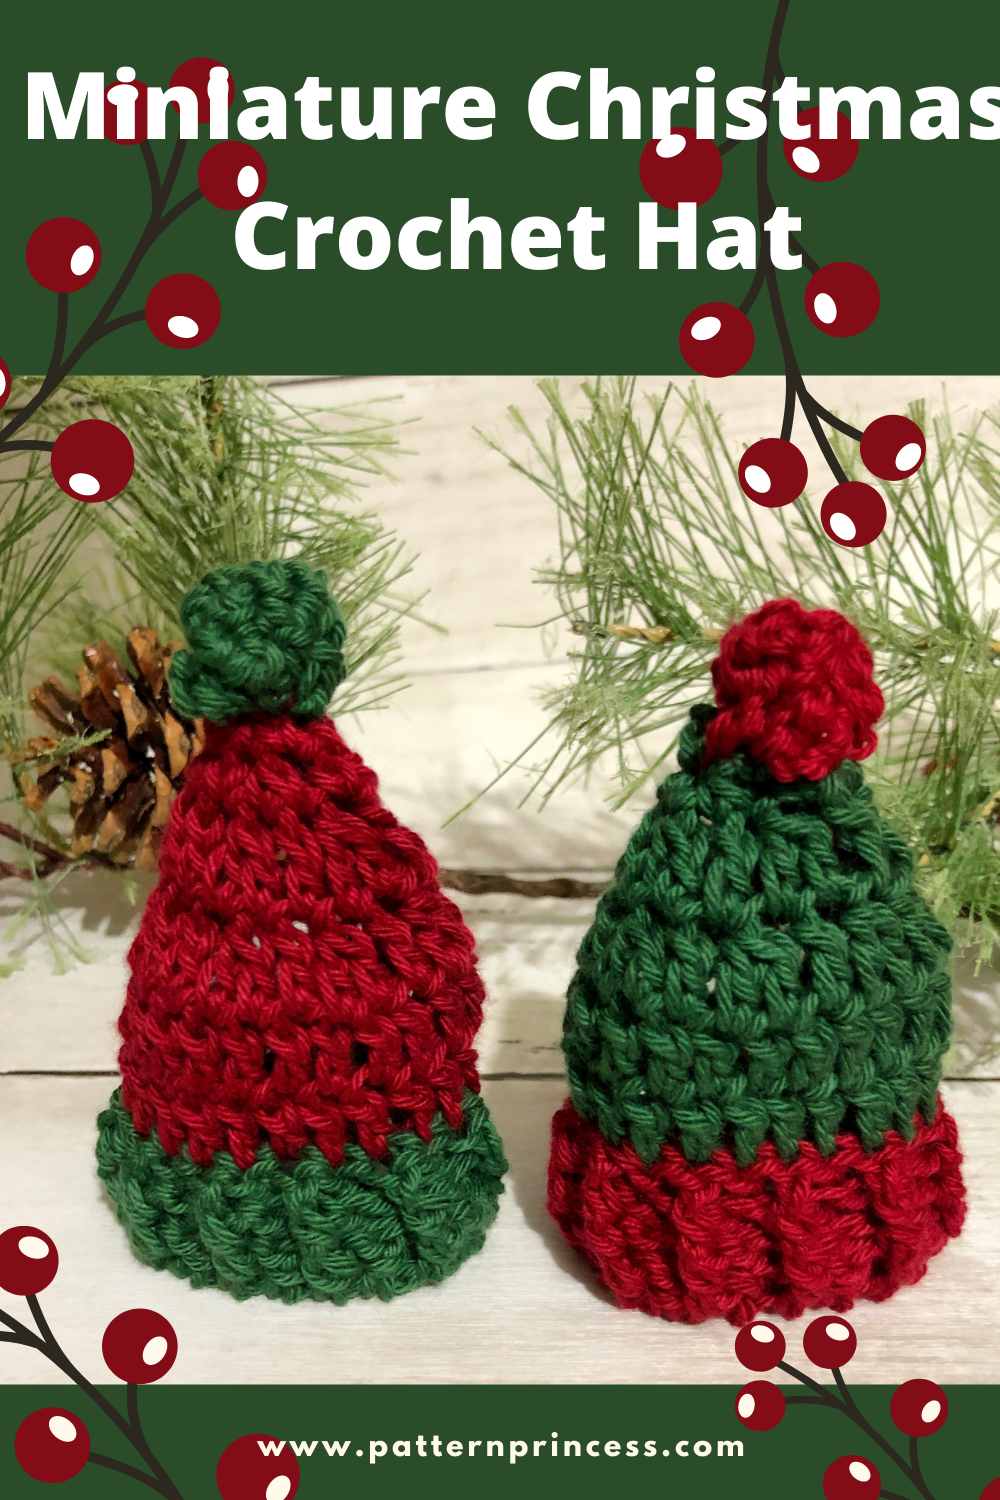 Miniature Christmas Crochet Hat